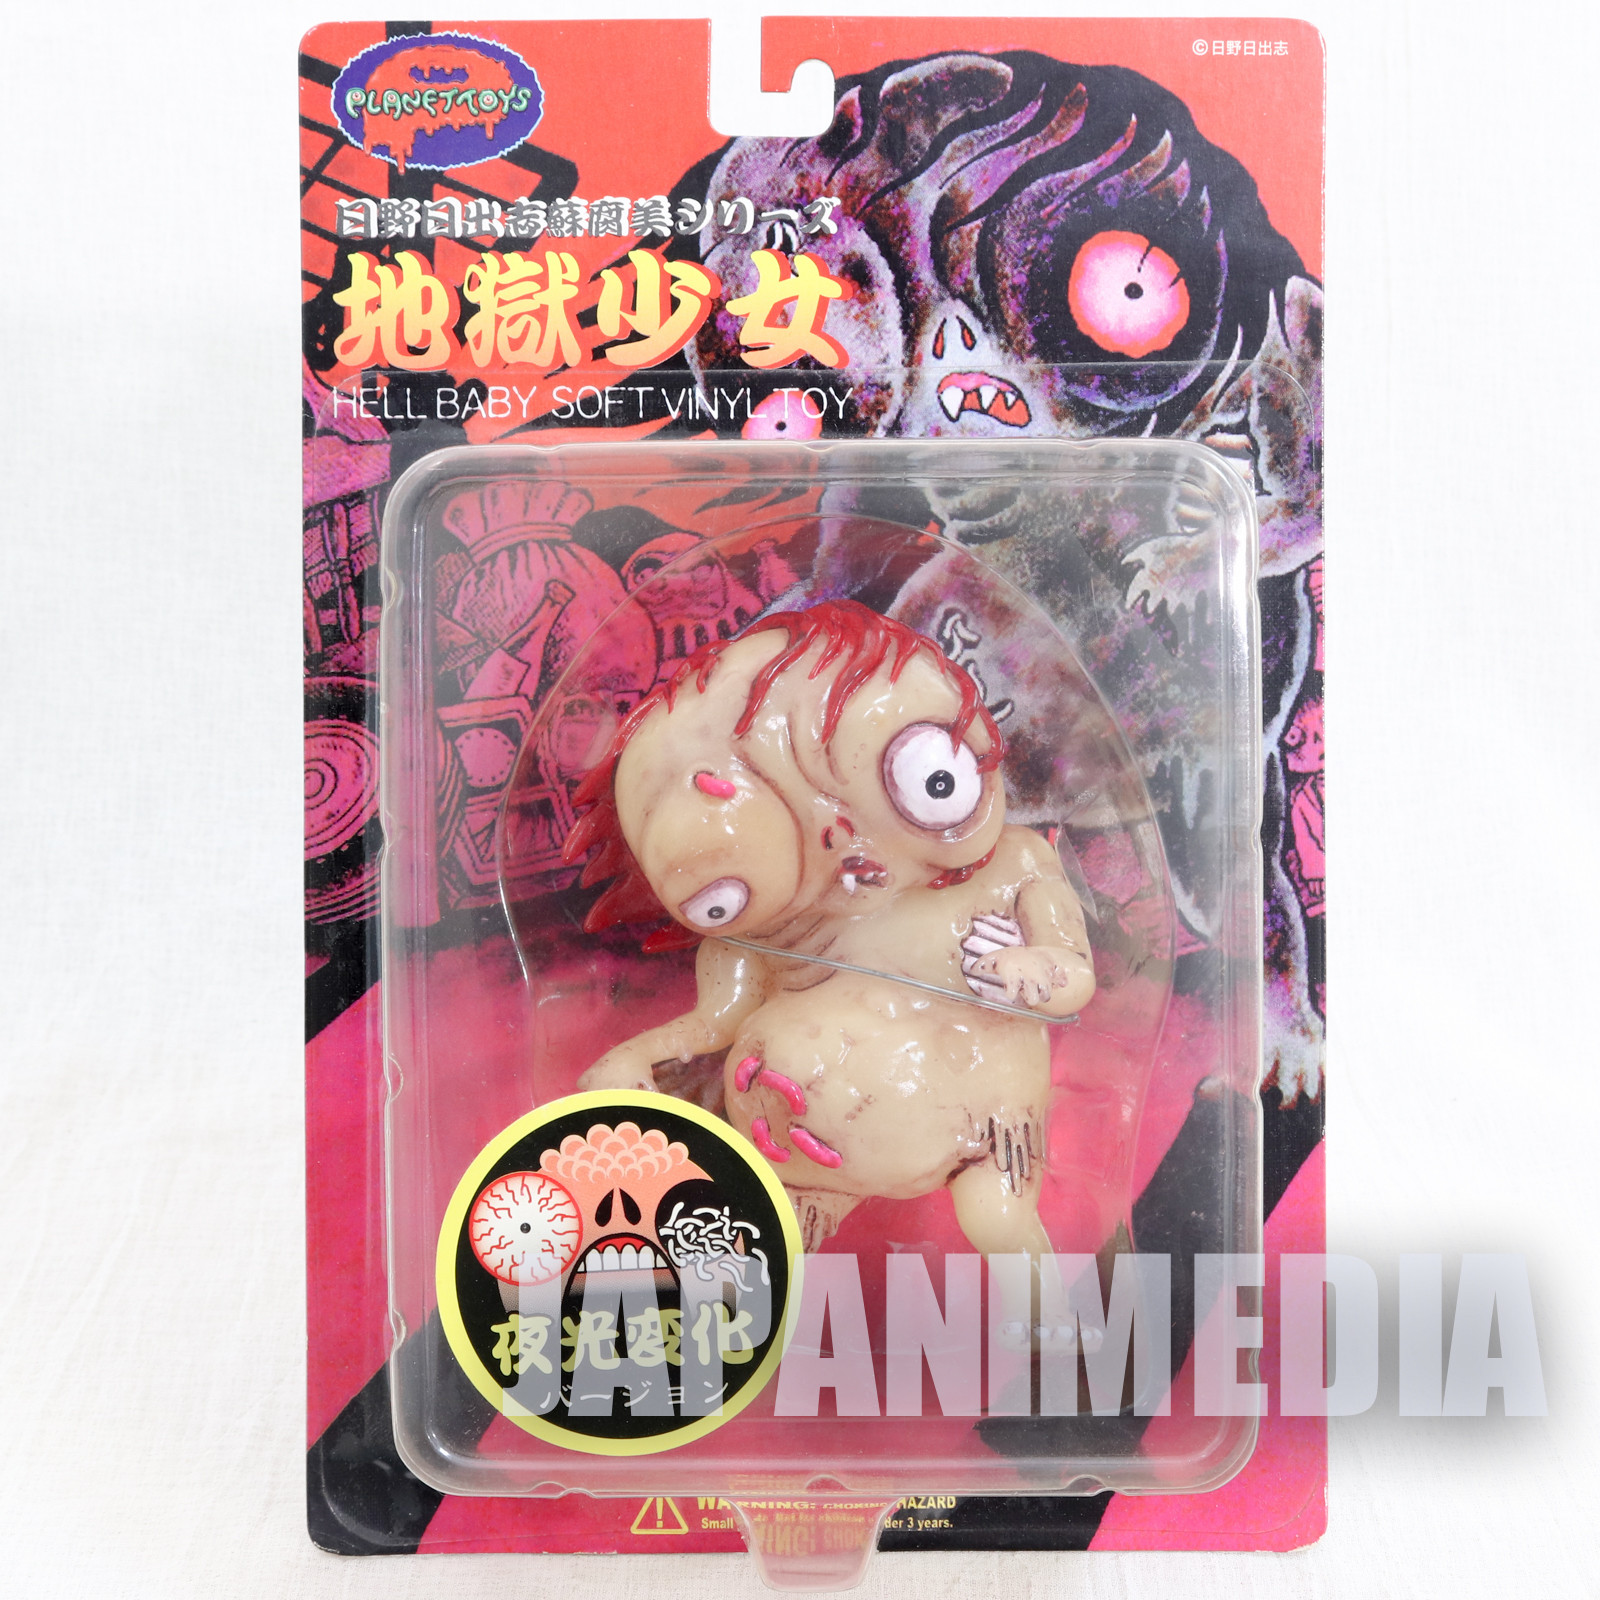 RARE! Jigoku Shoujo Hell Baby Figure Hideshi Hino Planet Toys JAPAN MANGA HORROR 2